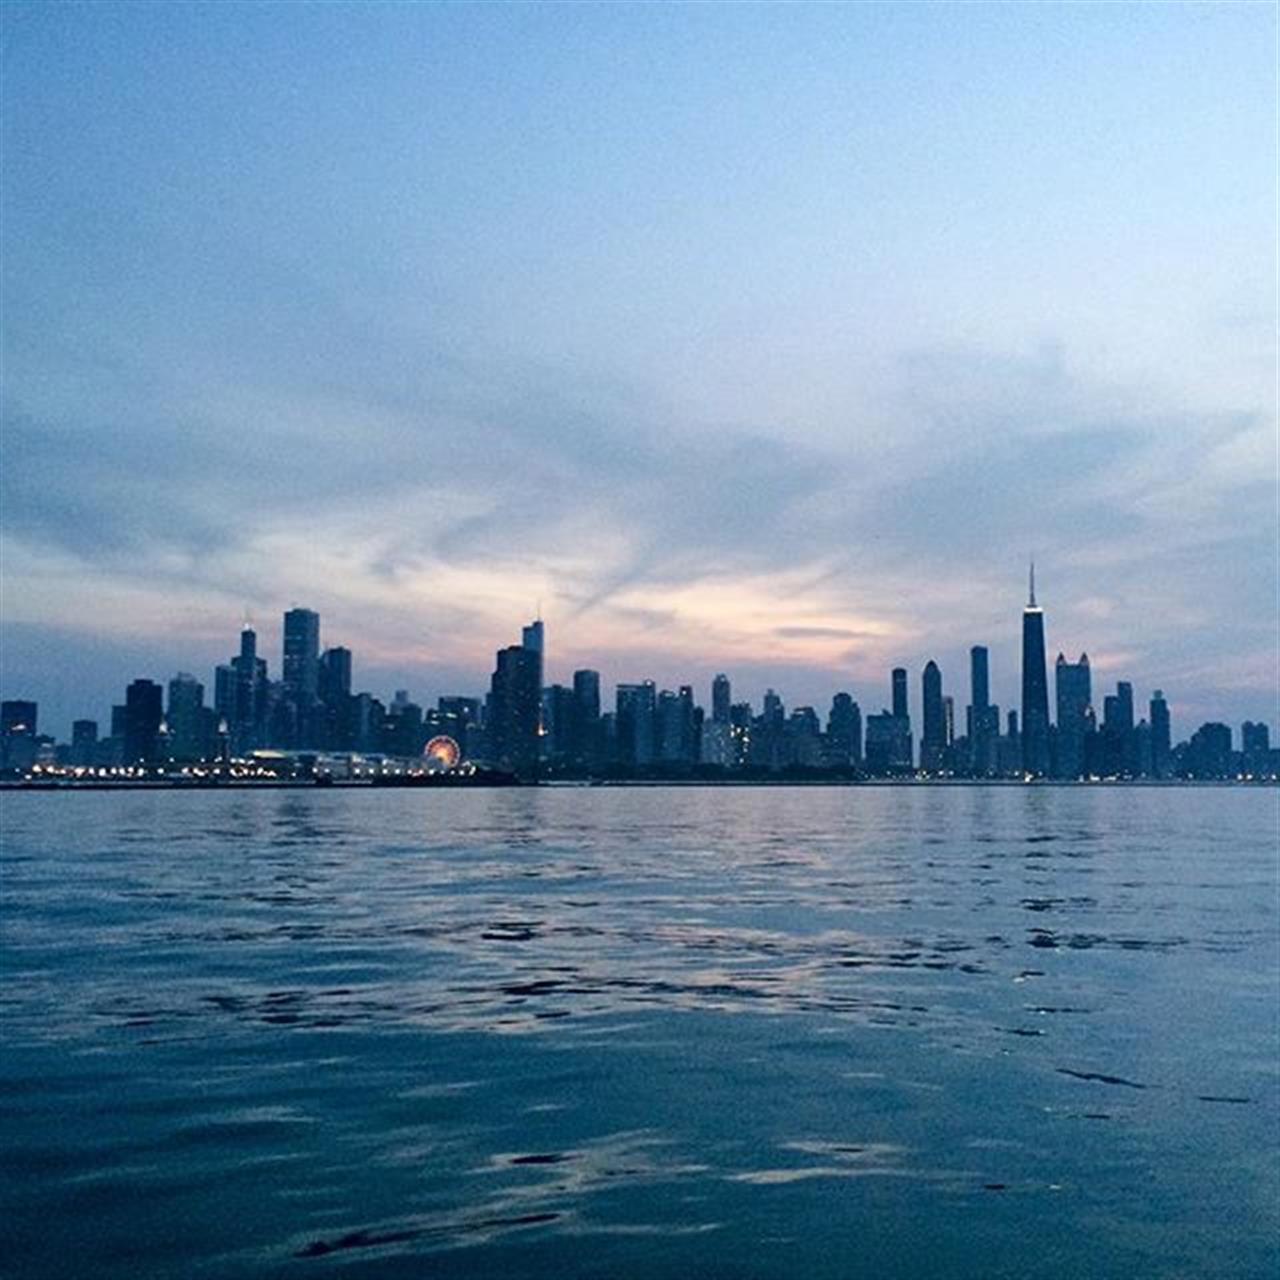 My Kind of Lakefront #chicago #illinois #lakefront #leadingrelocal